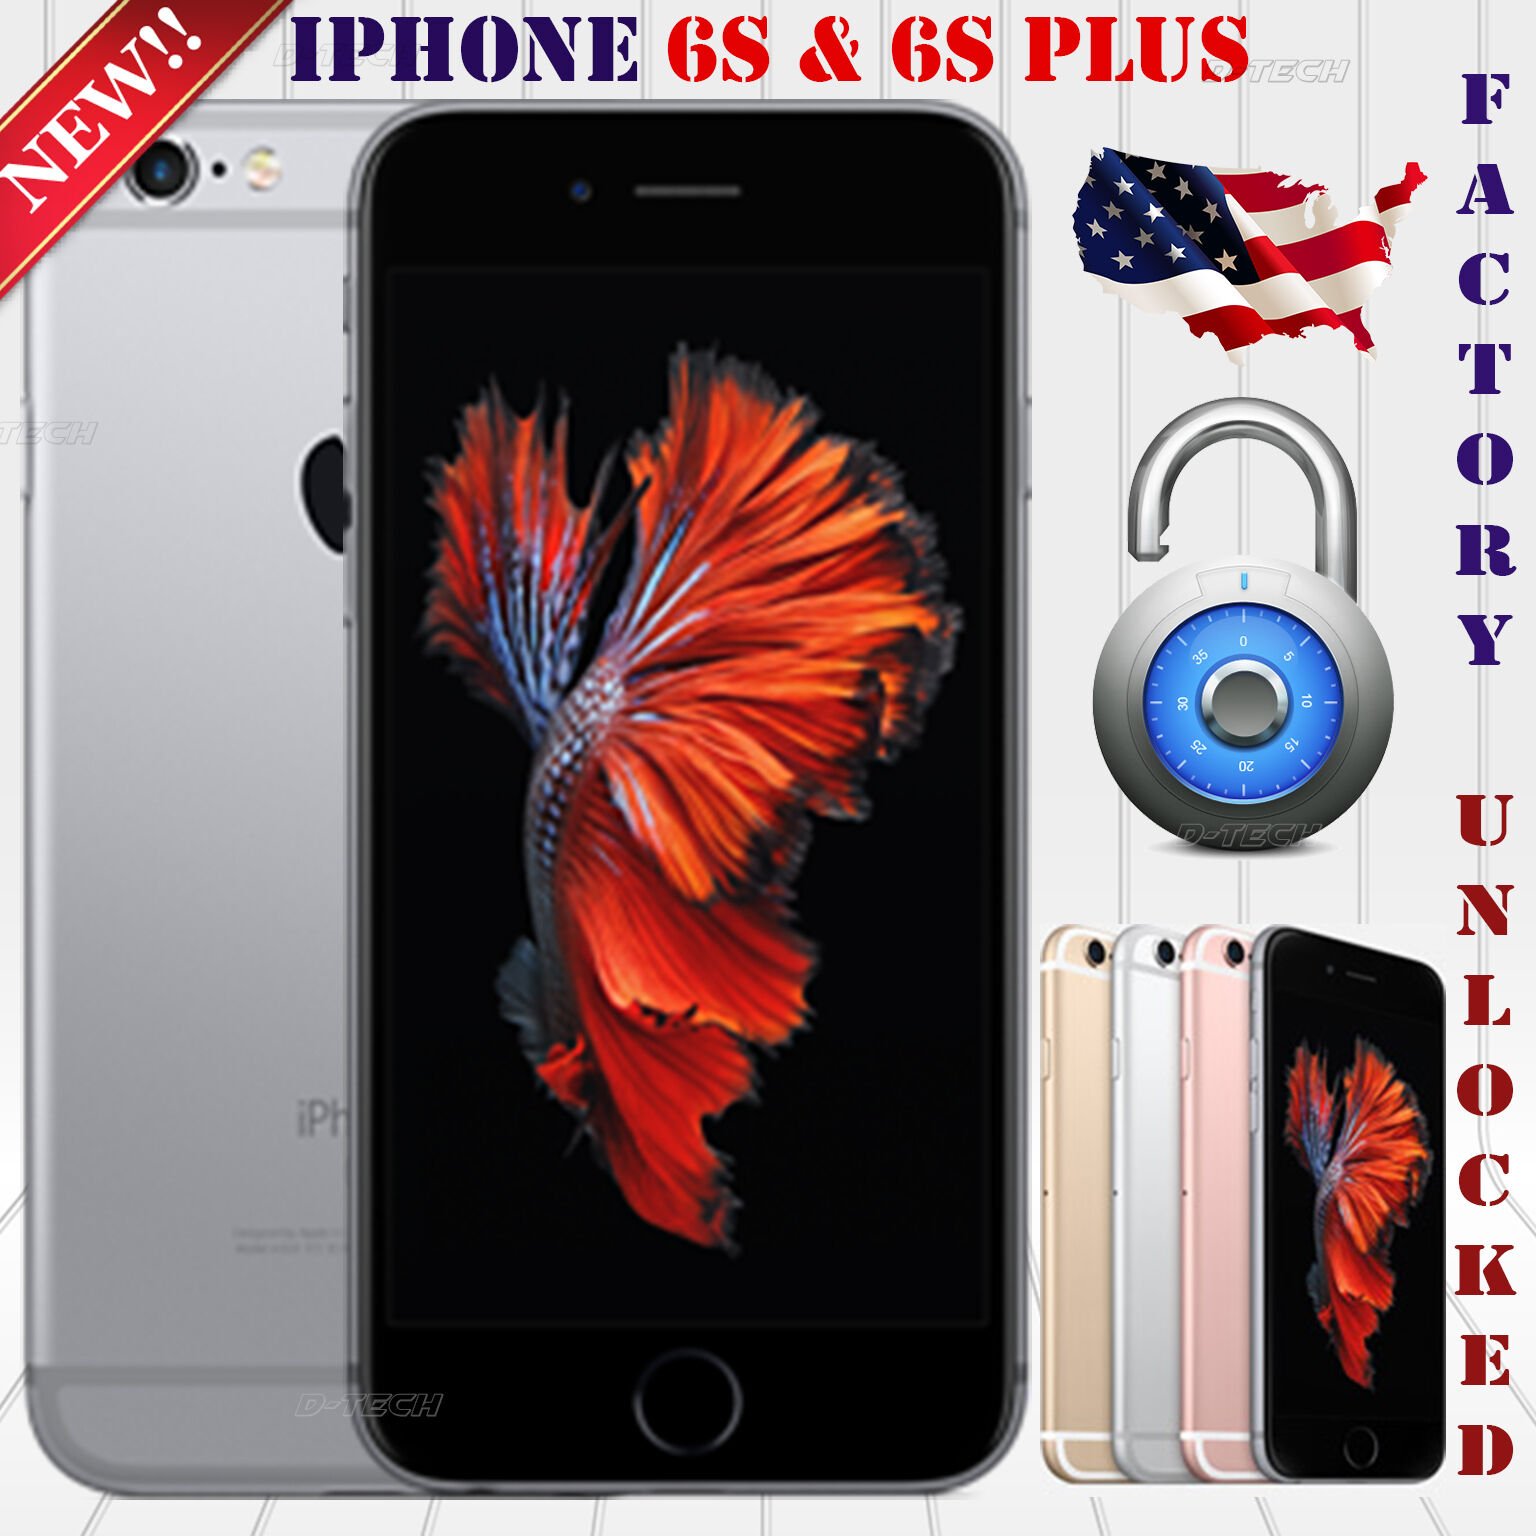 Apple Iphone 6S Plus (32 / 64 / 128 GB) FACTORY UNLOCKED PHONE 4G LTE HD NEW